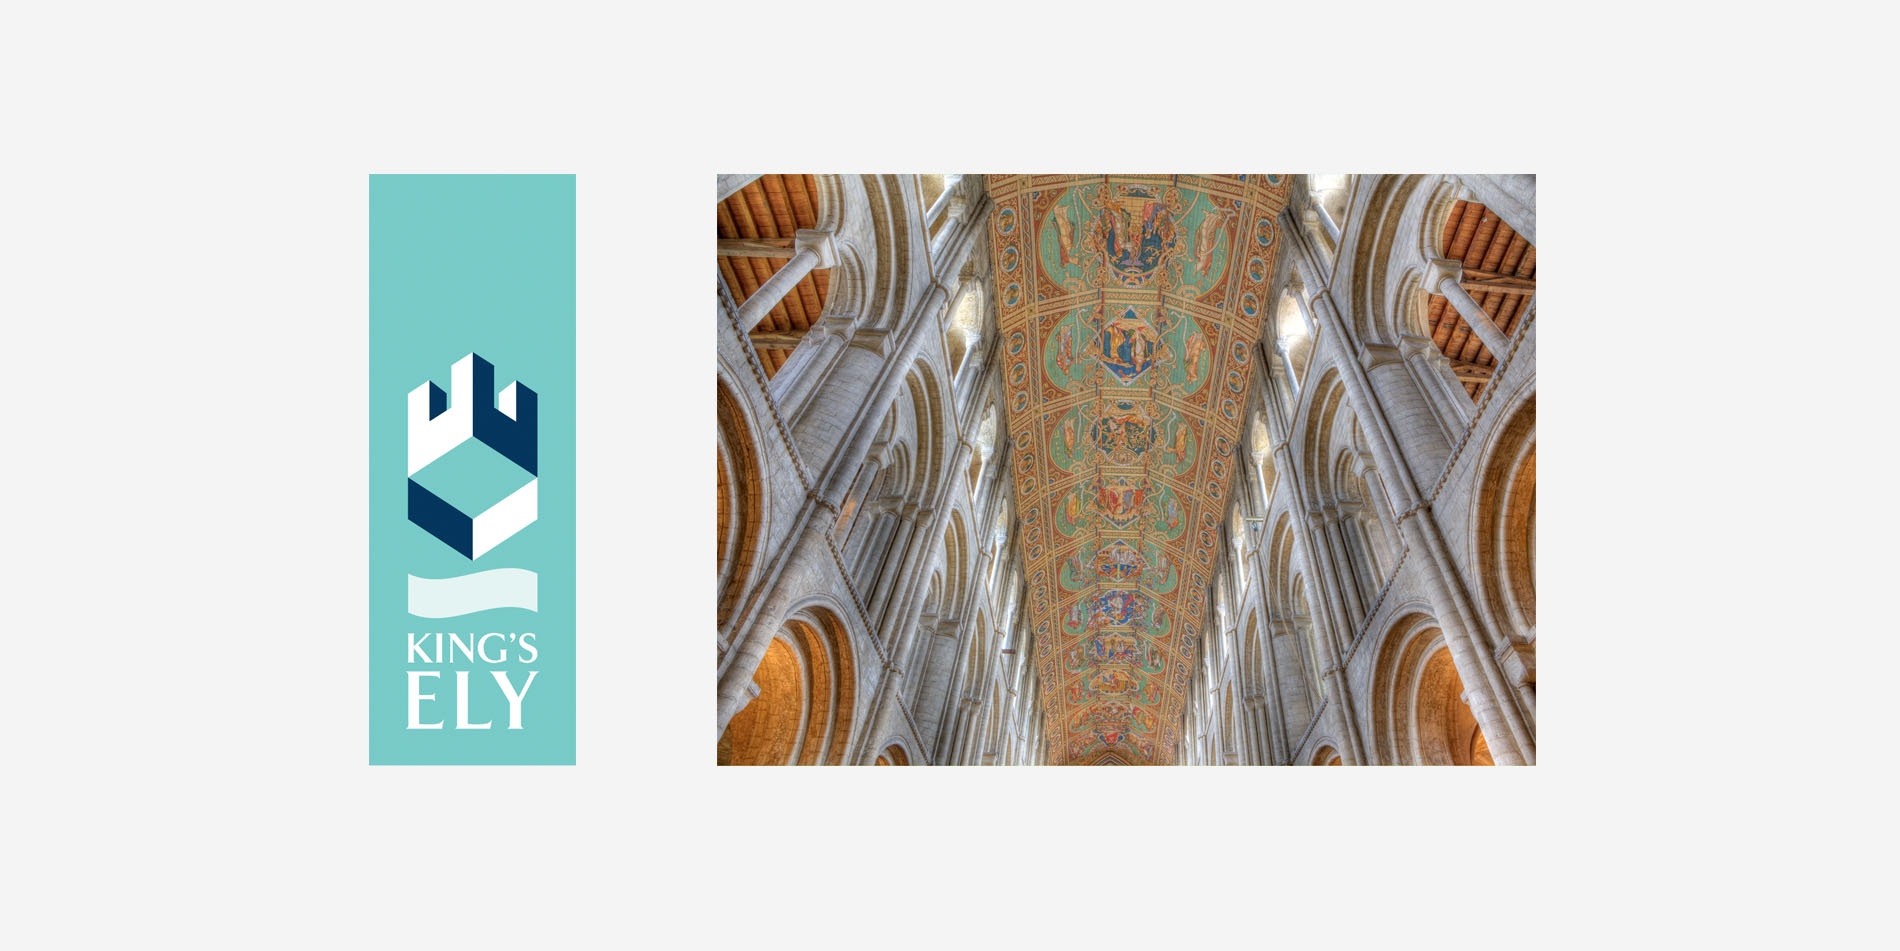 The updated King's Ely logo and Ely Cathedral